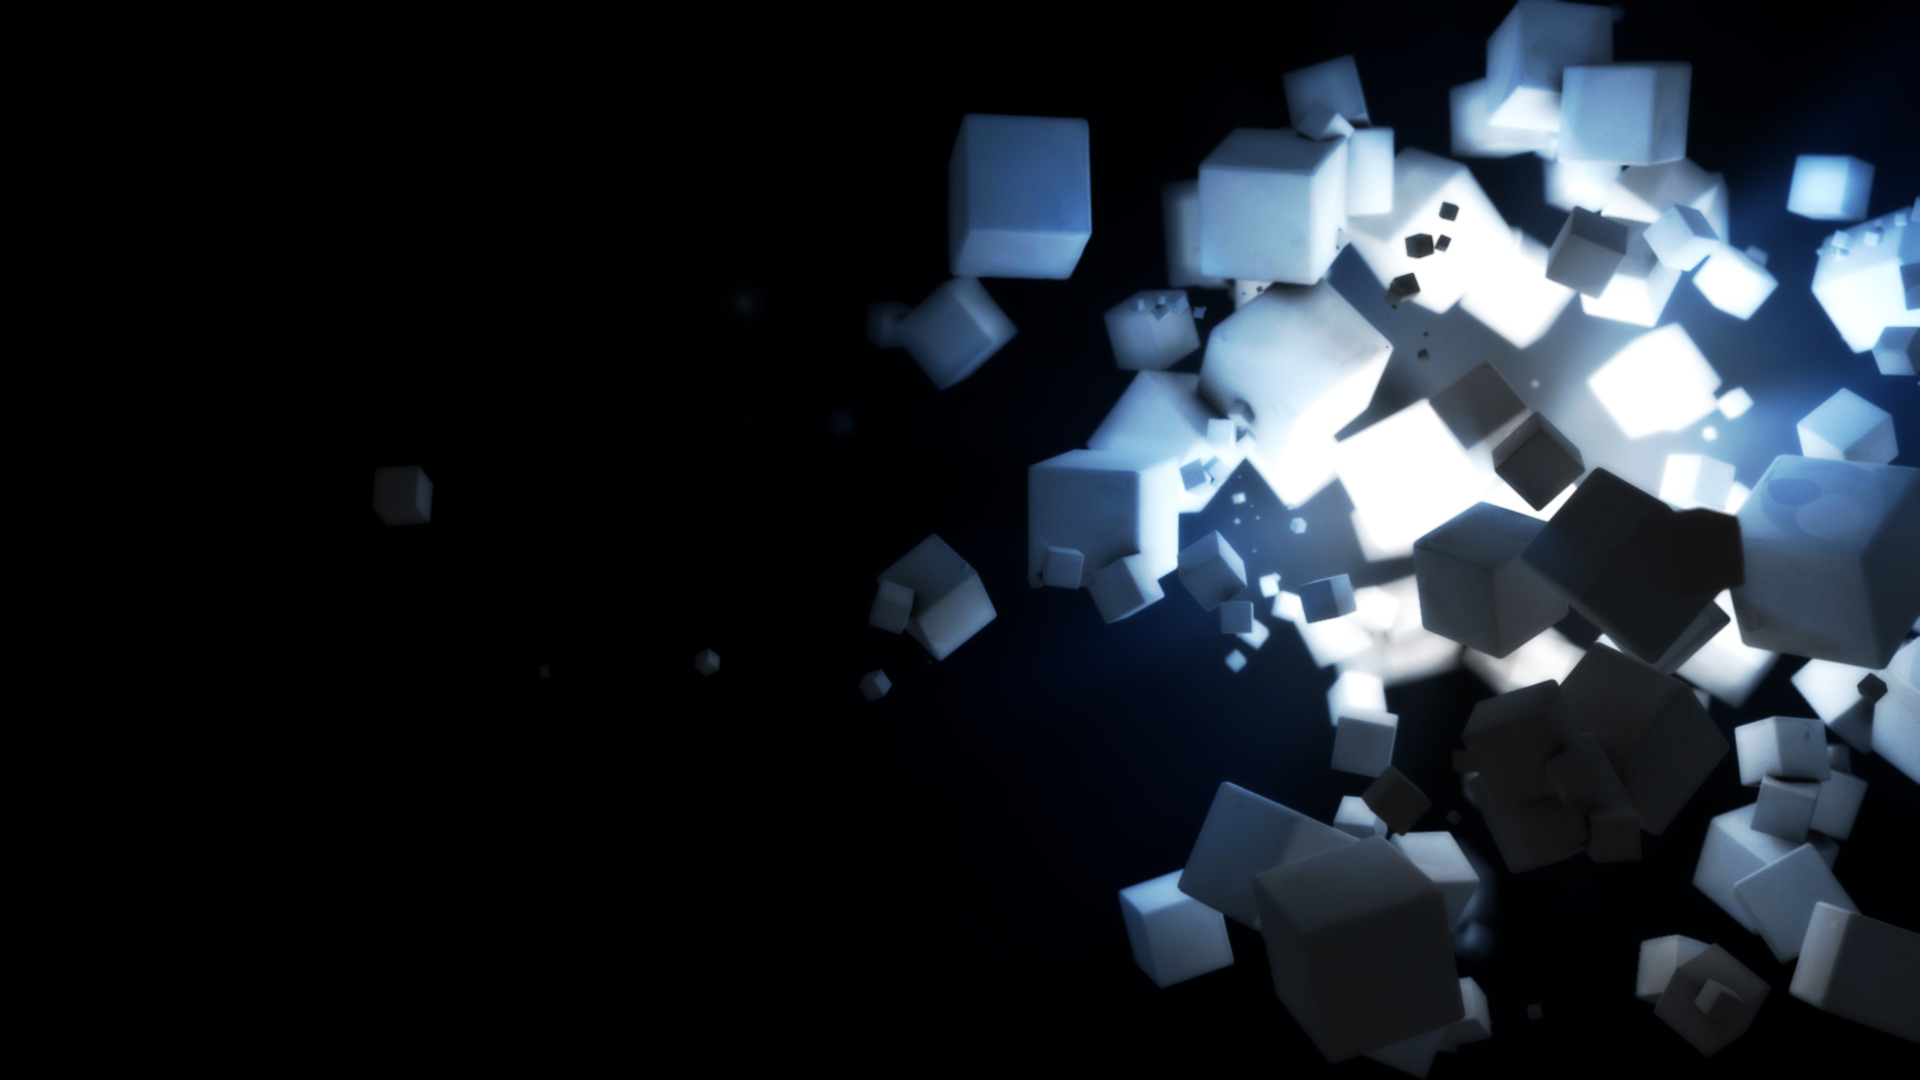 Dark Cubes Wallpapers HD Wallpapers 1920x1080